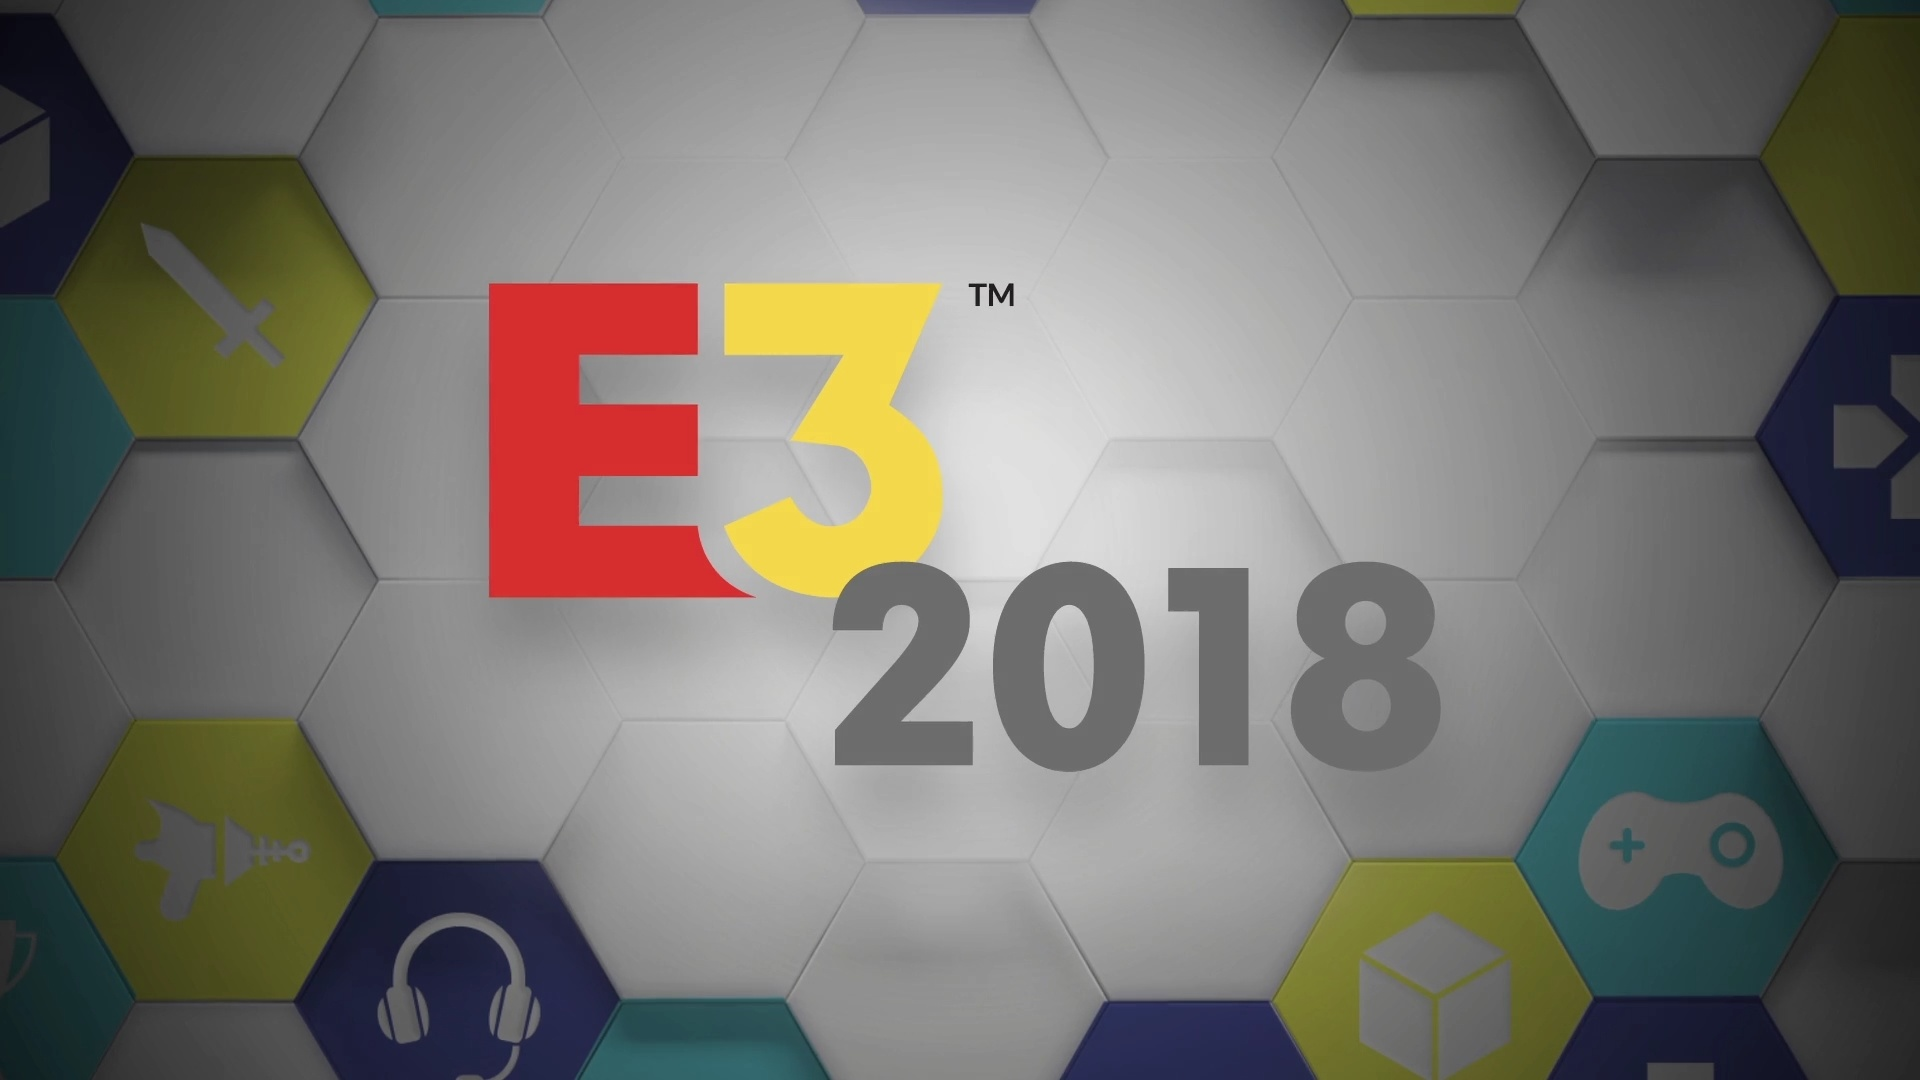 E3 2018 Press Conference date and times